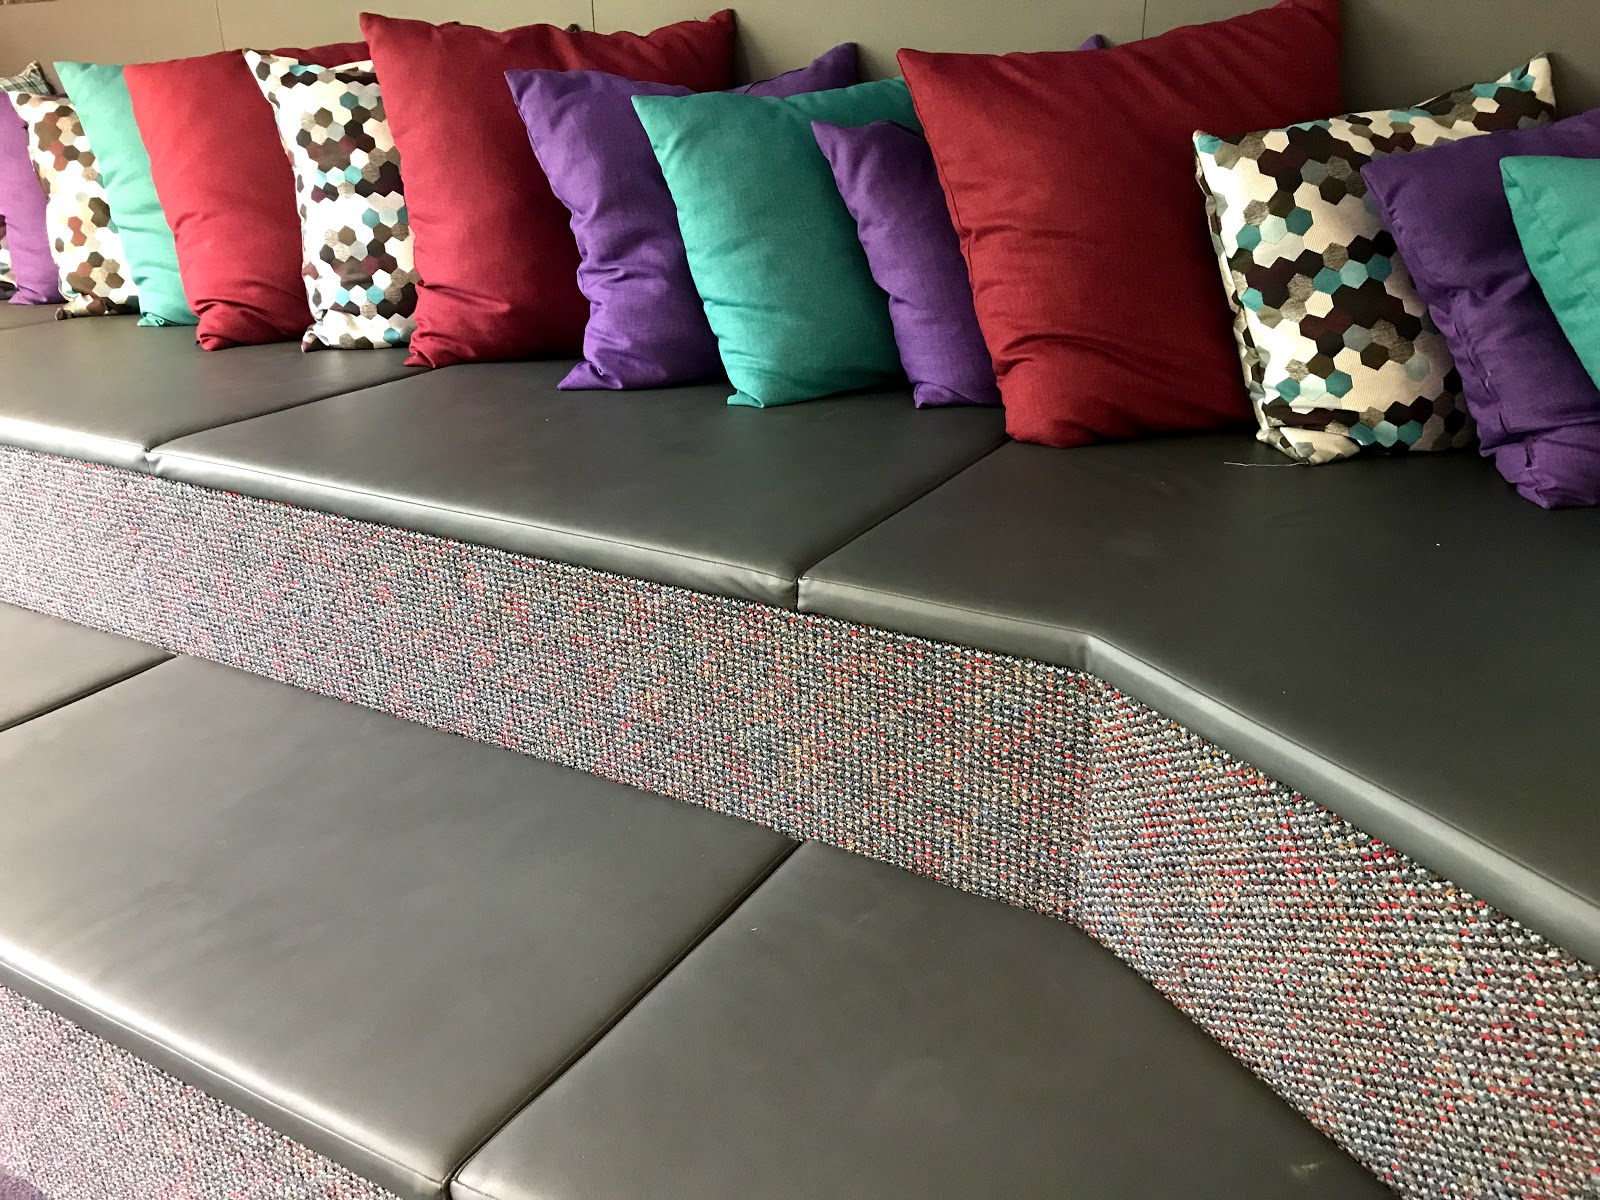 Image: Sofa with pillows in the students rooms to enjoy